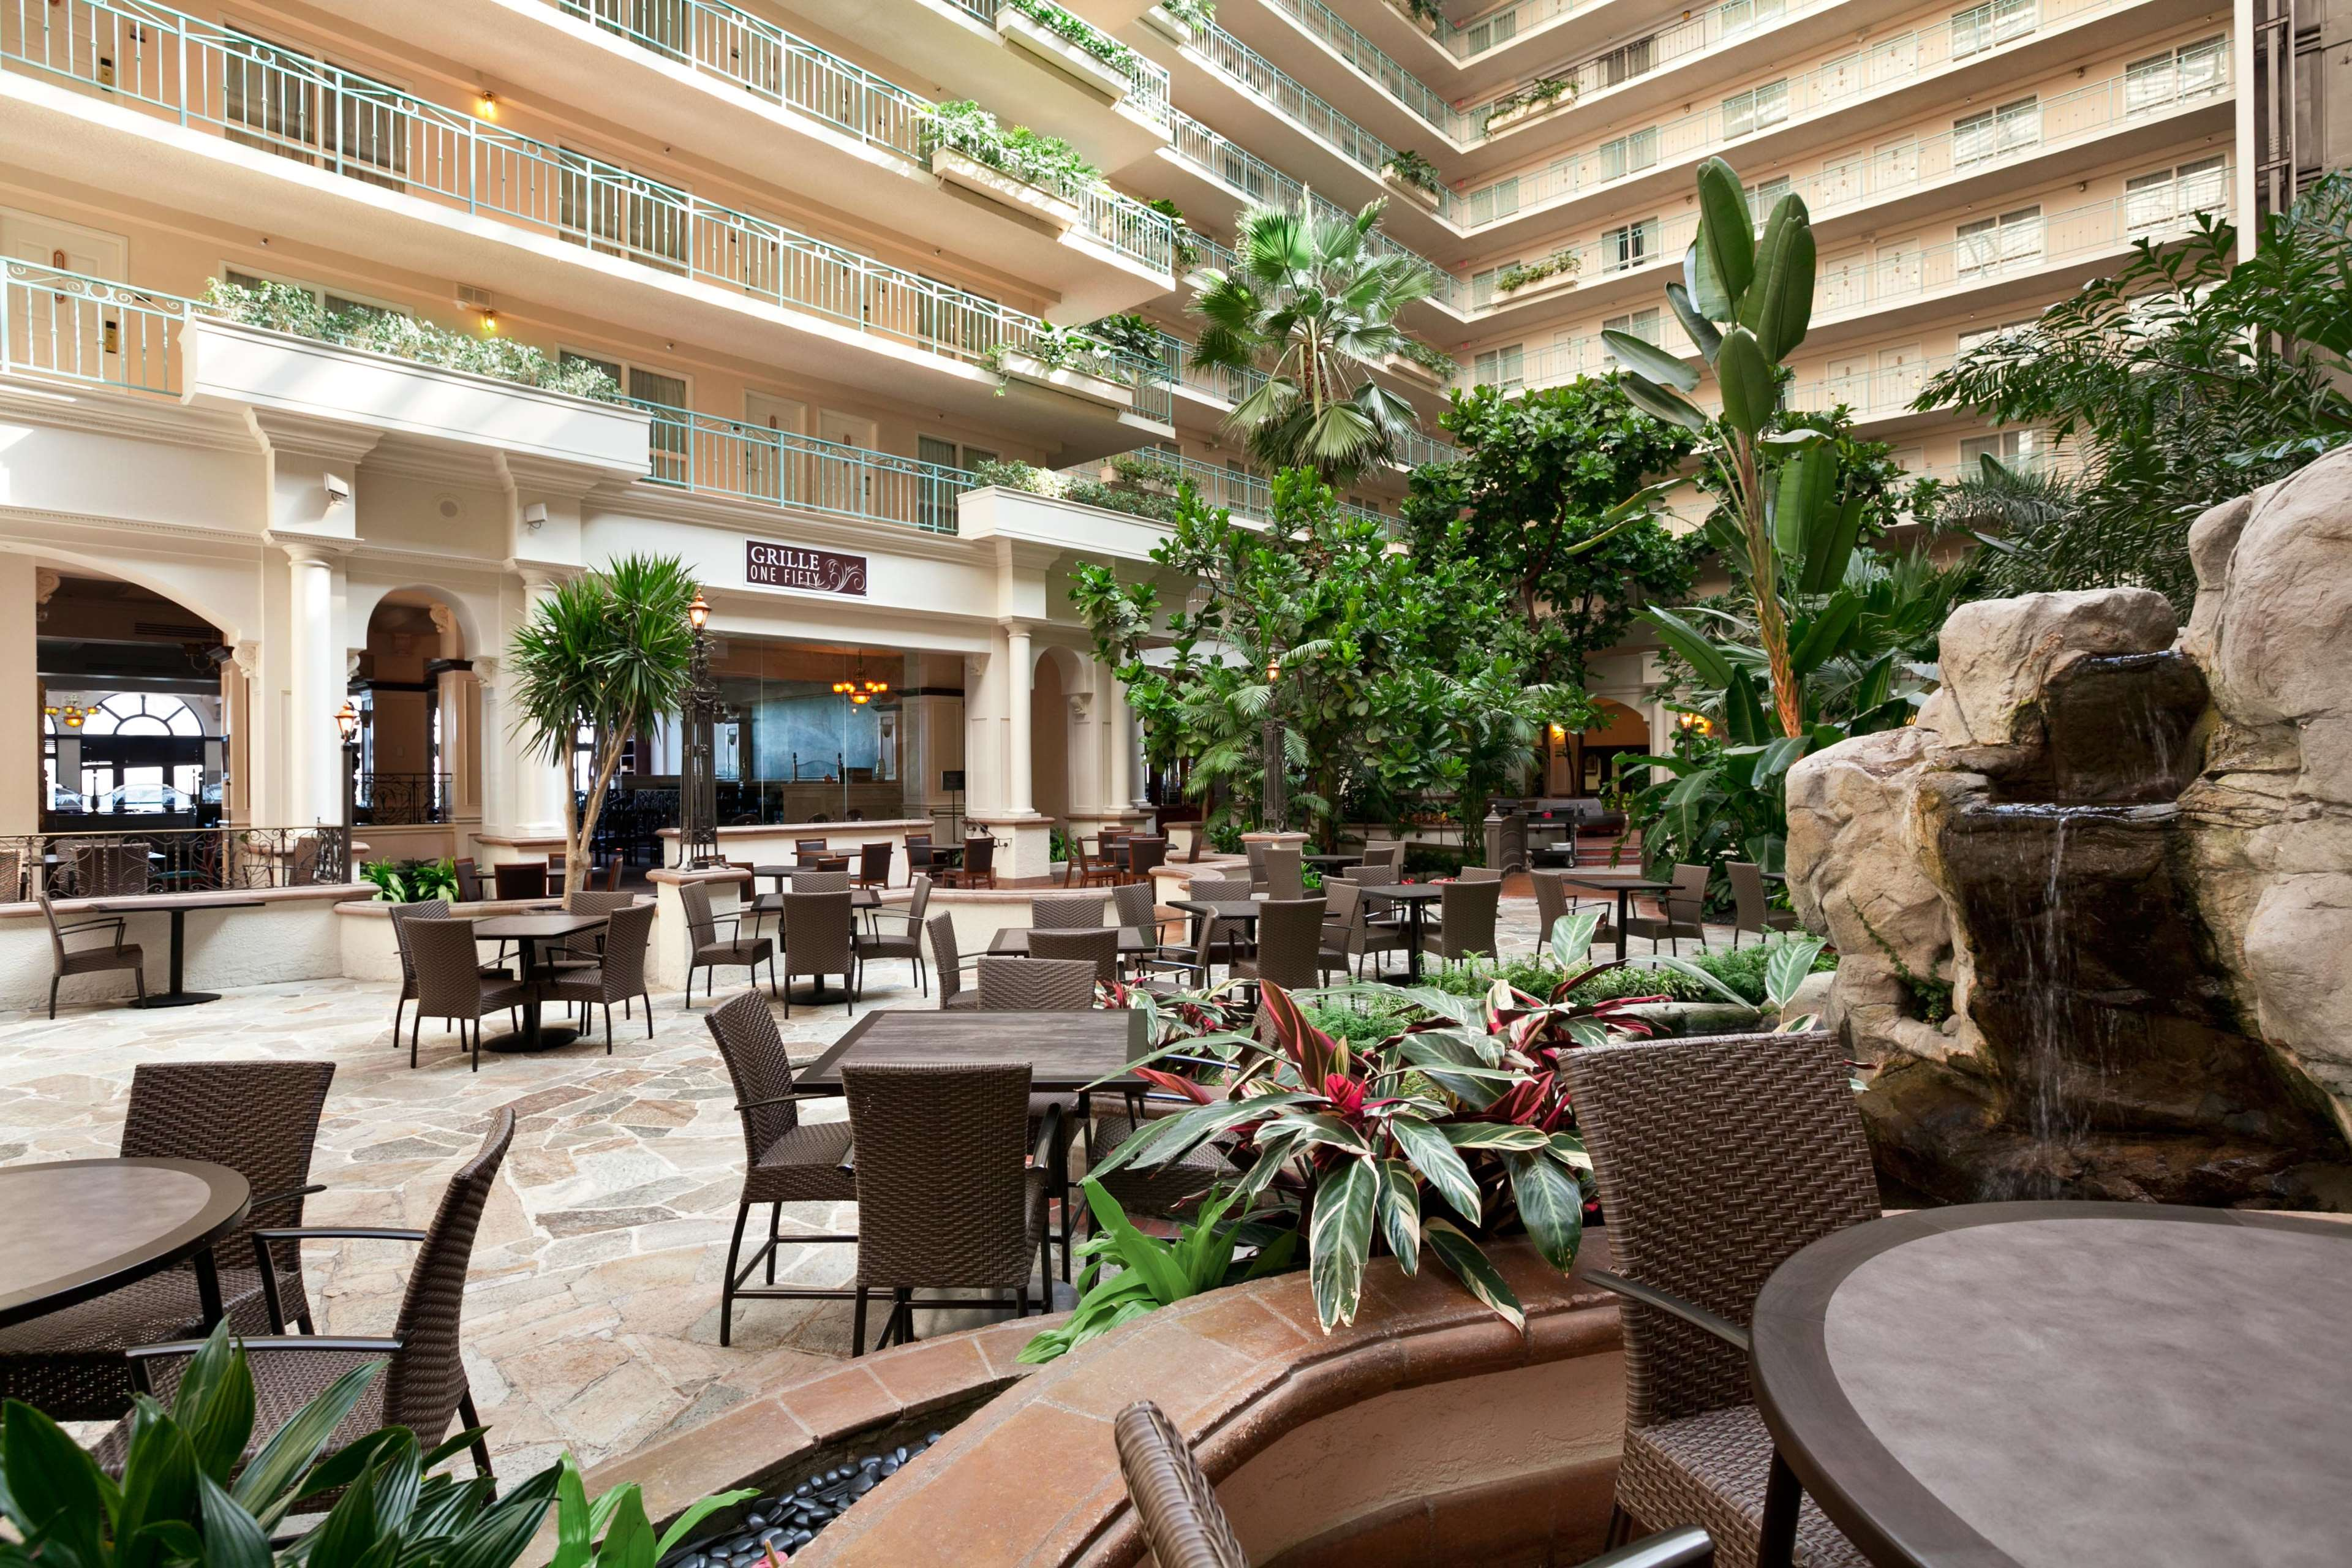 Embassy Suites by Hilton San Francisco Airport Waterfront image 8